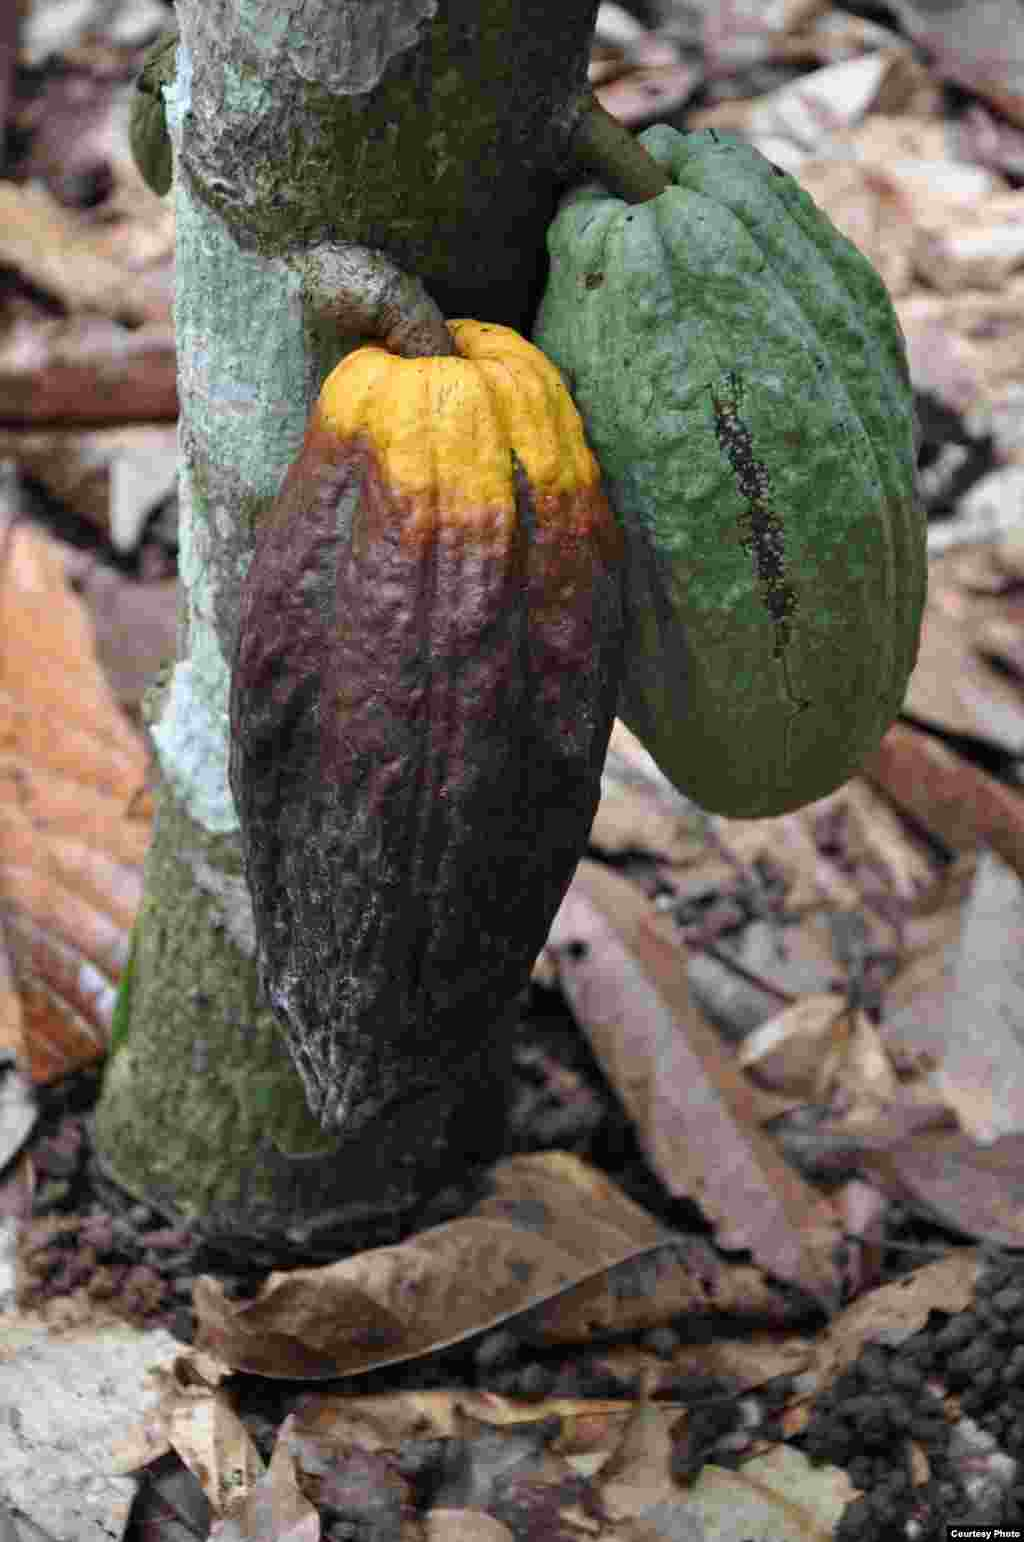 Pod of cocoa plant with black pod infection (left) next to a normal pod (right) (World Cocoa Foundation)